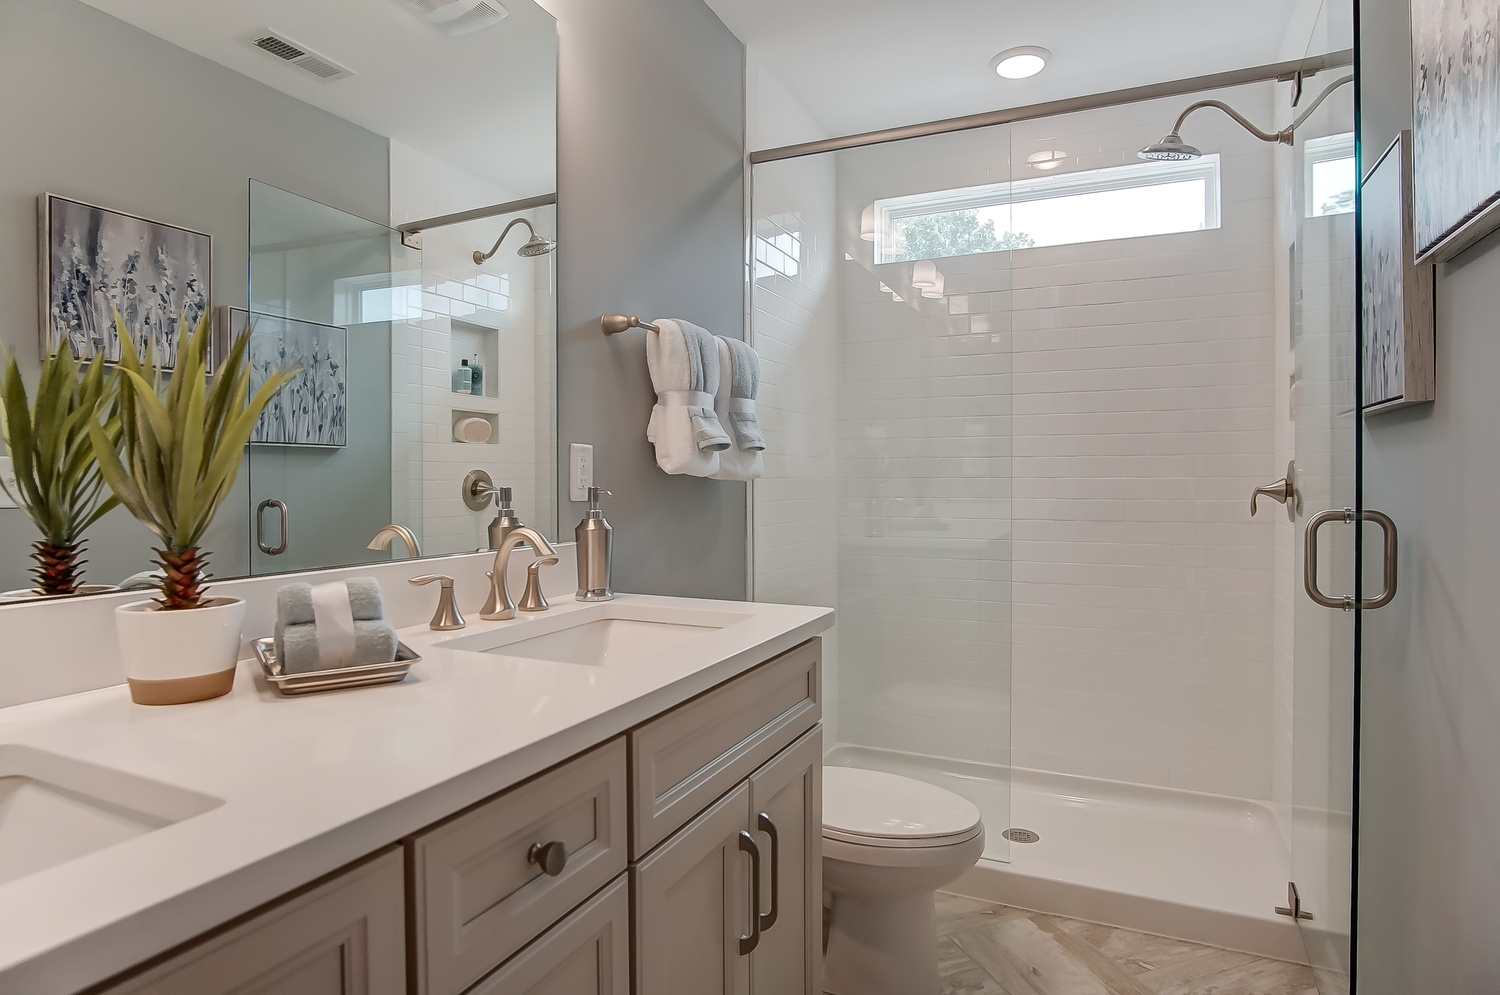 Kensington Townhome Owner's Bathroom